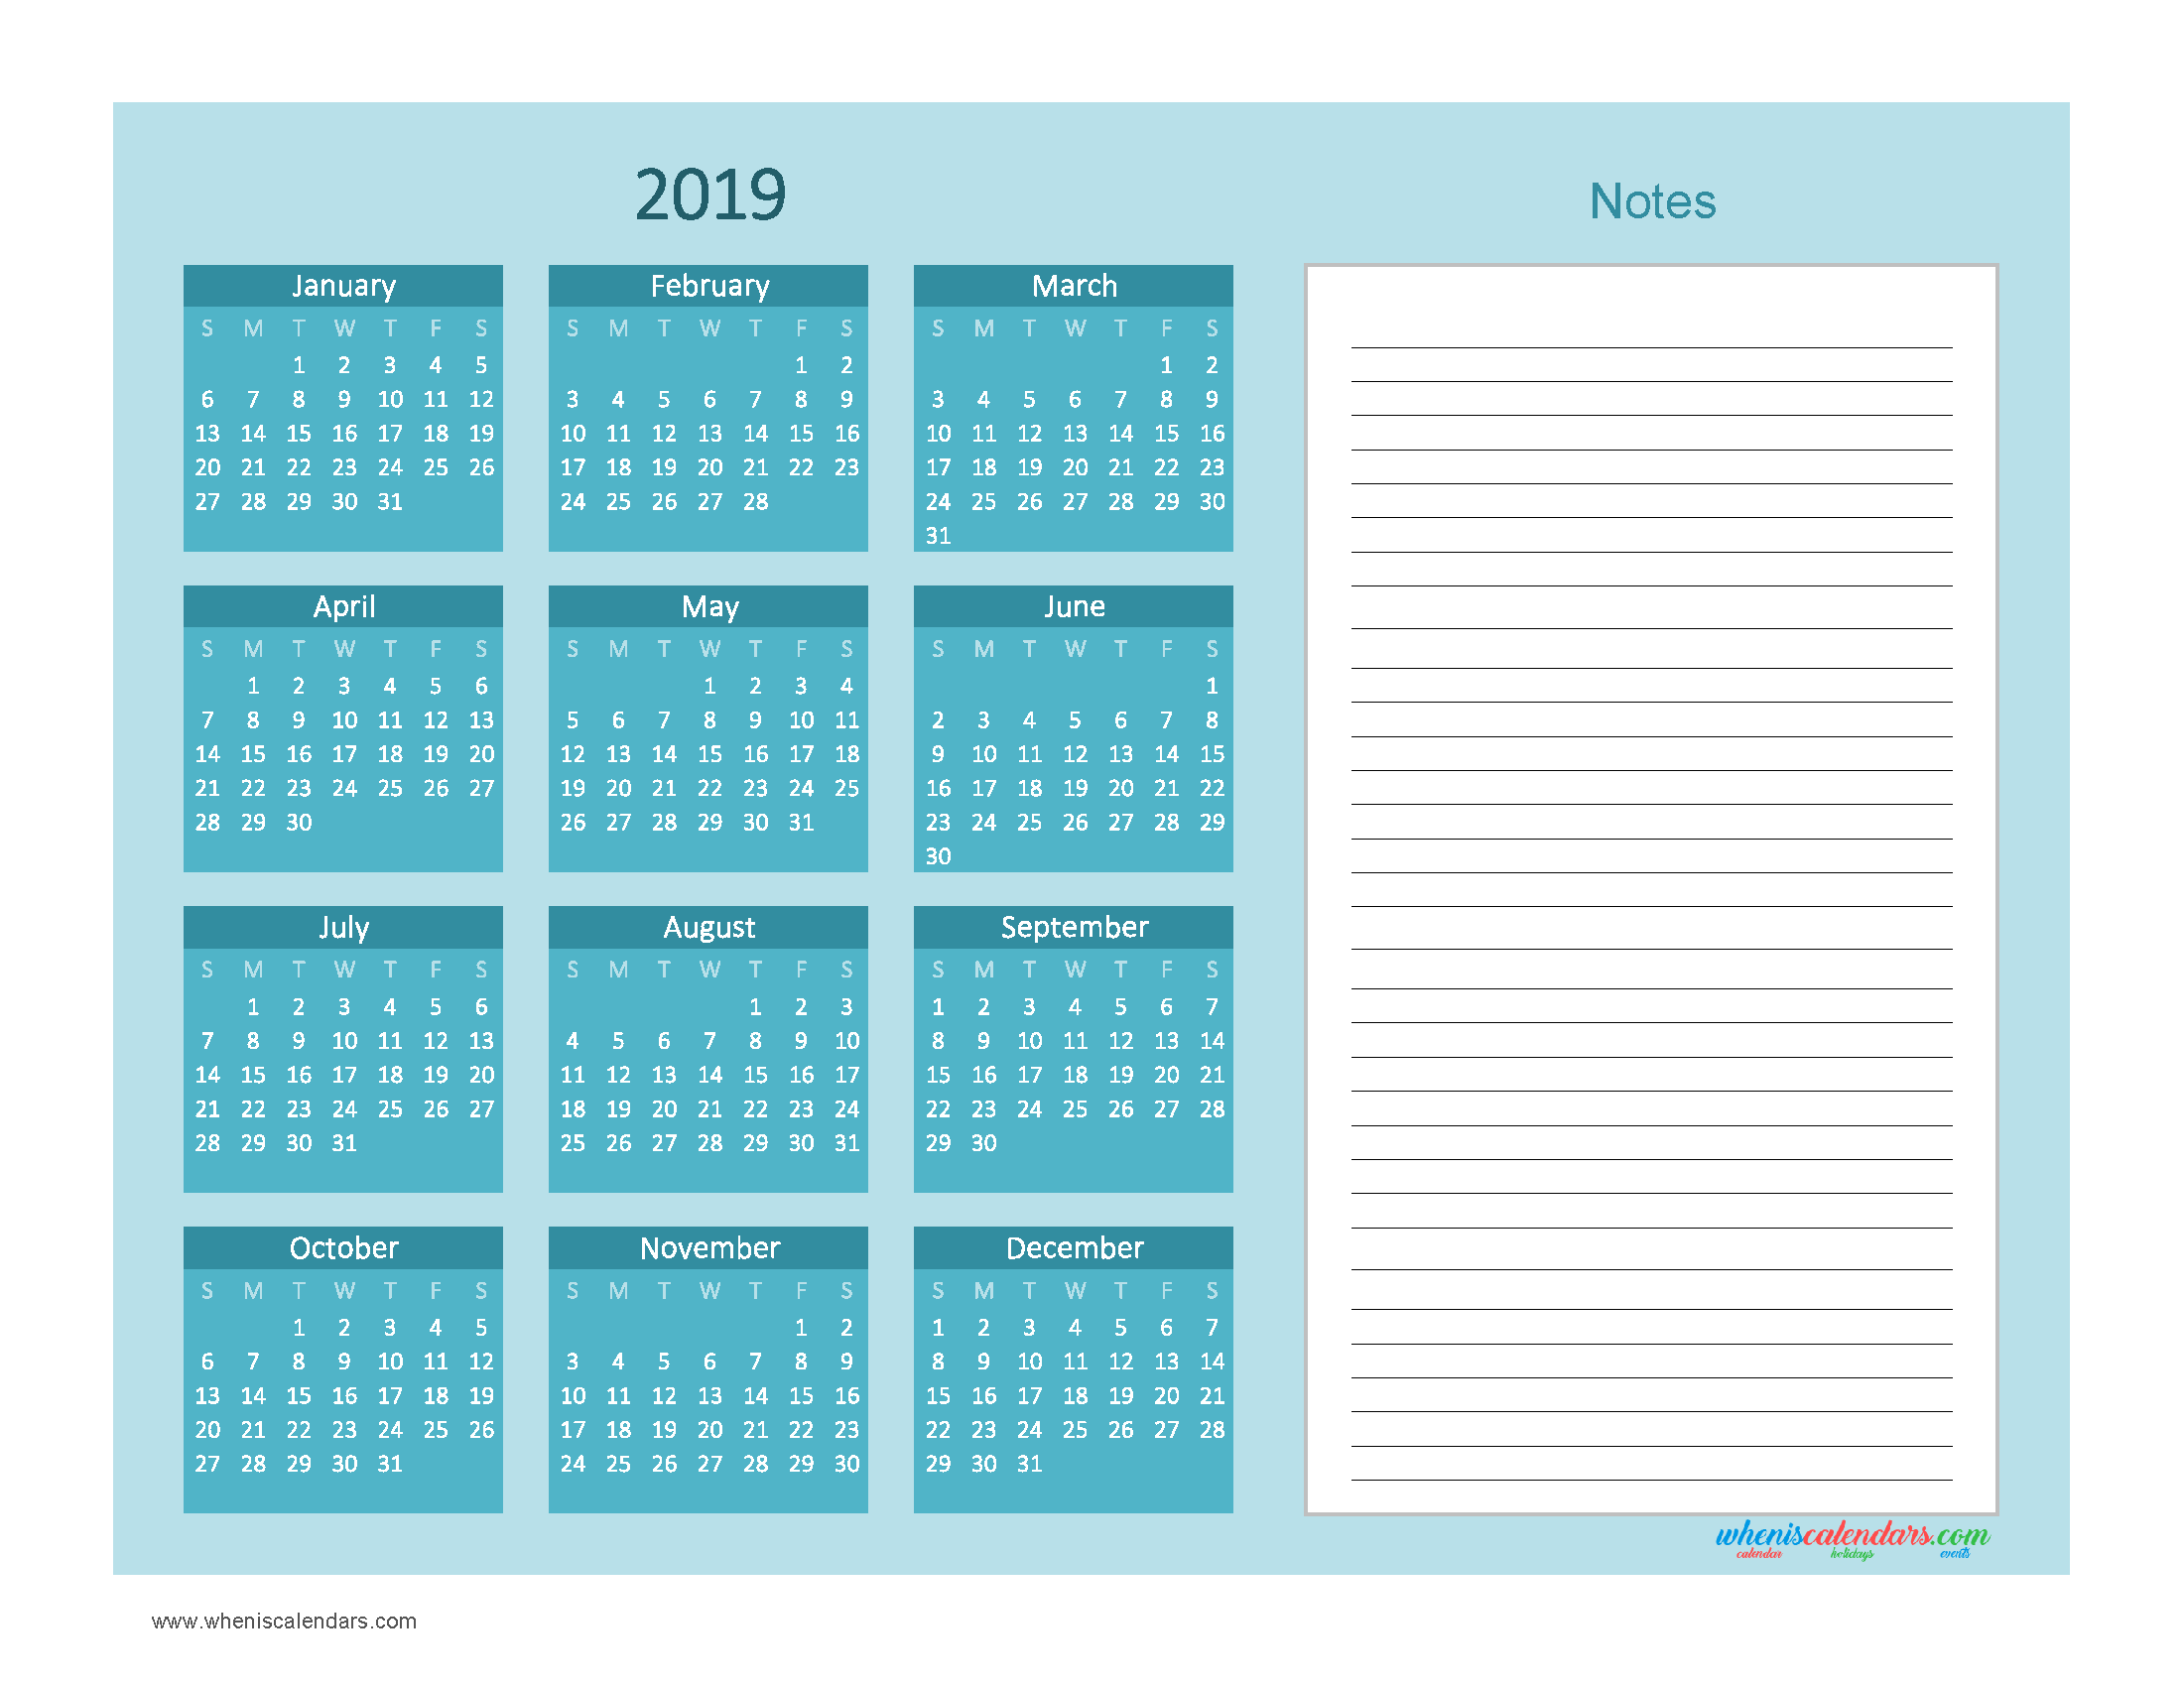 Printable Calendar 2019 with Notes free Download as PDF and Image - Color Ocean Blue